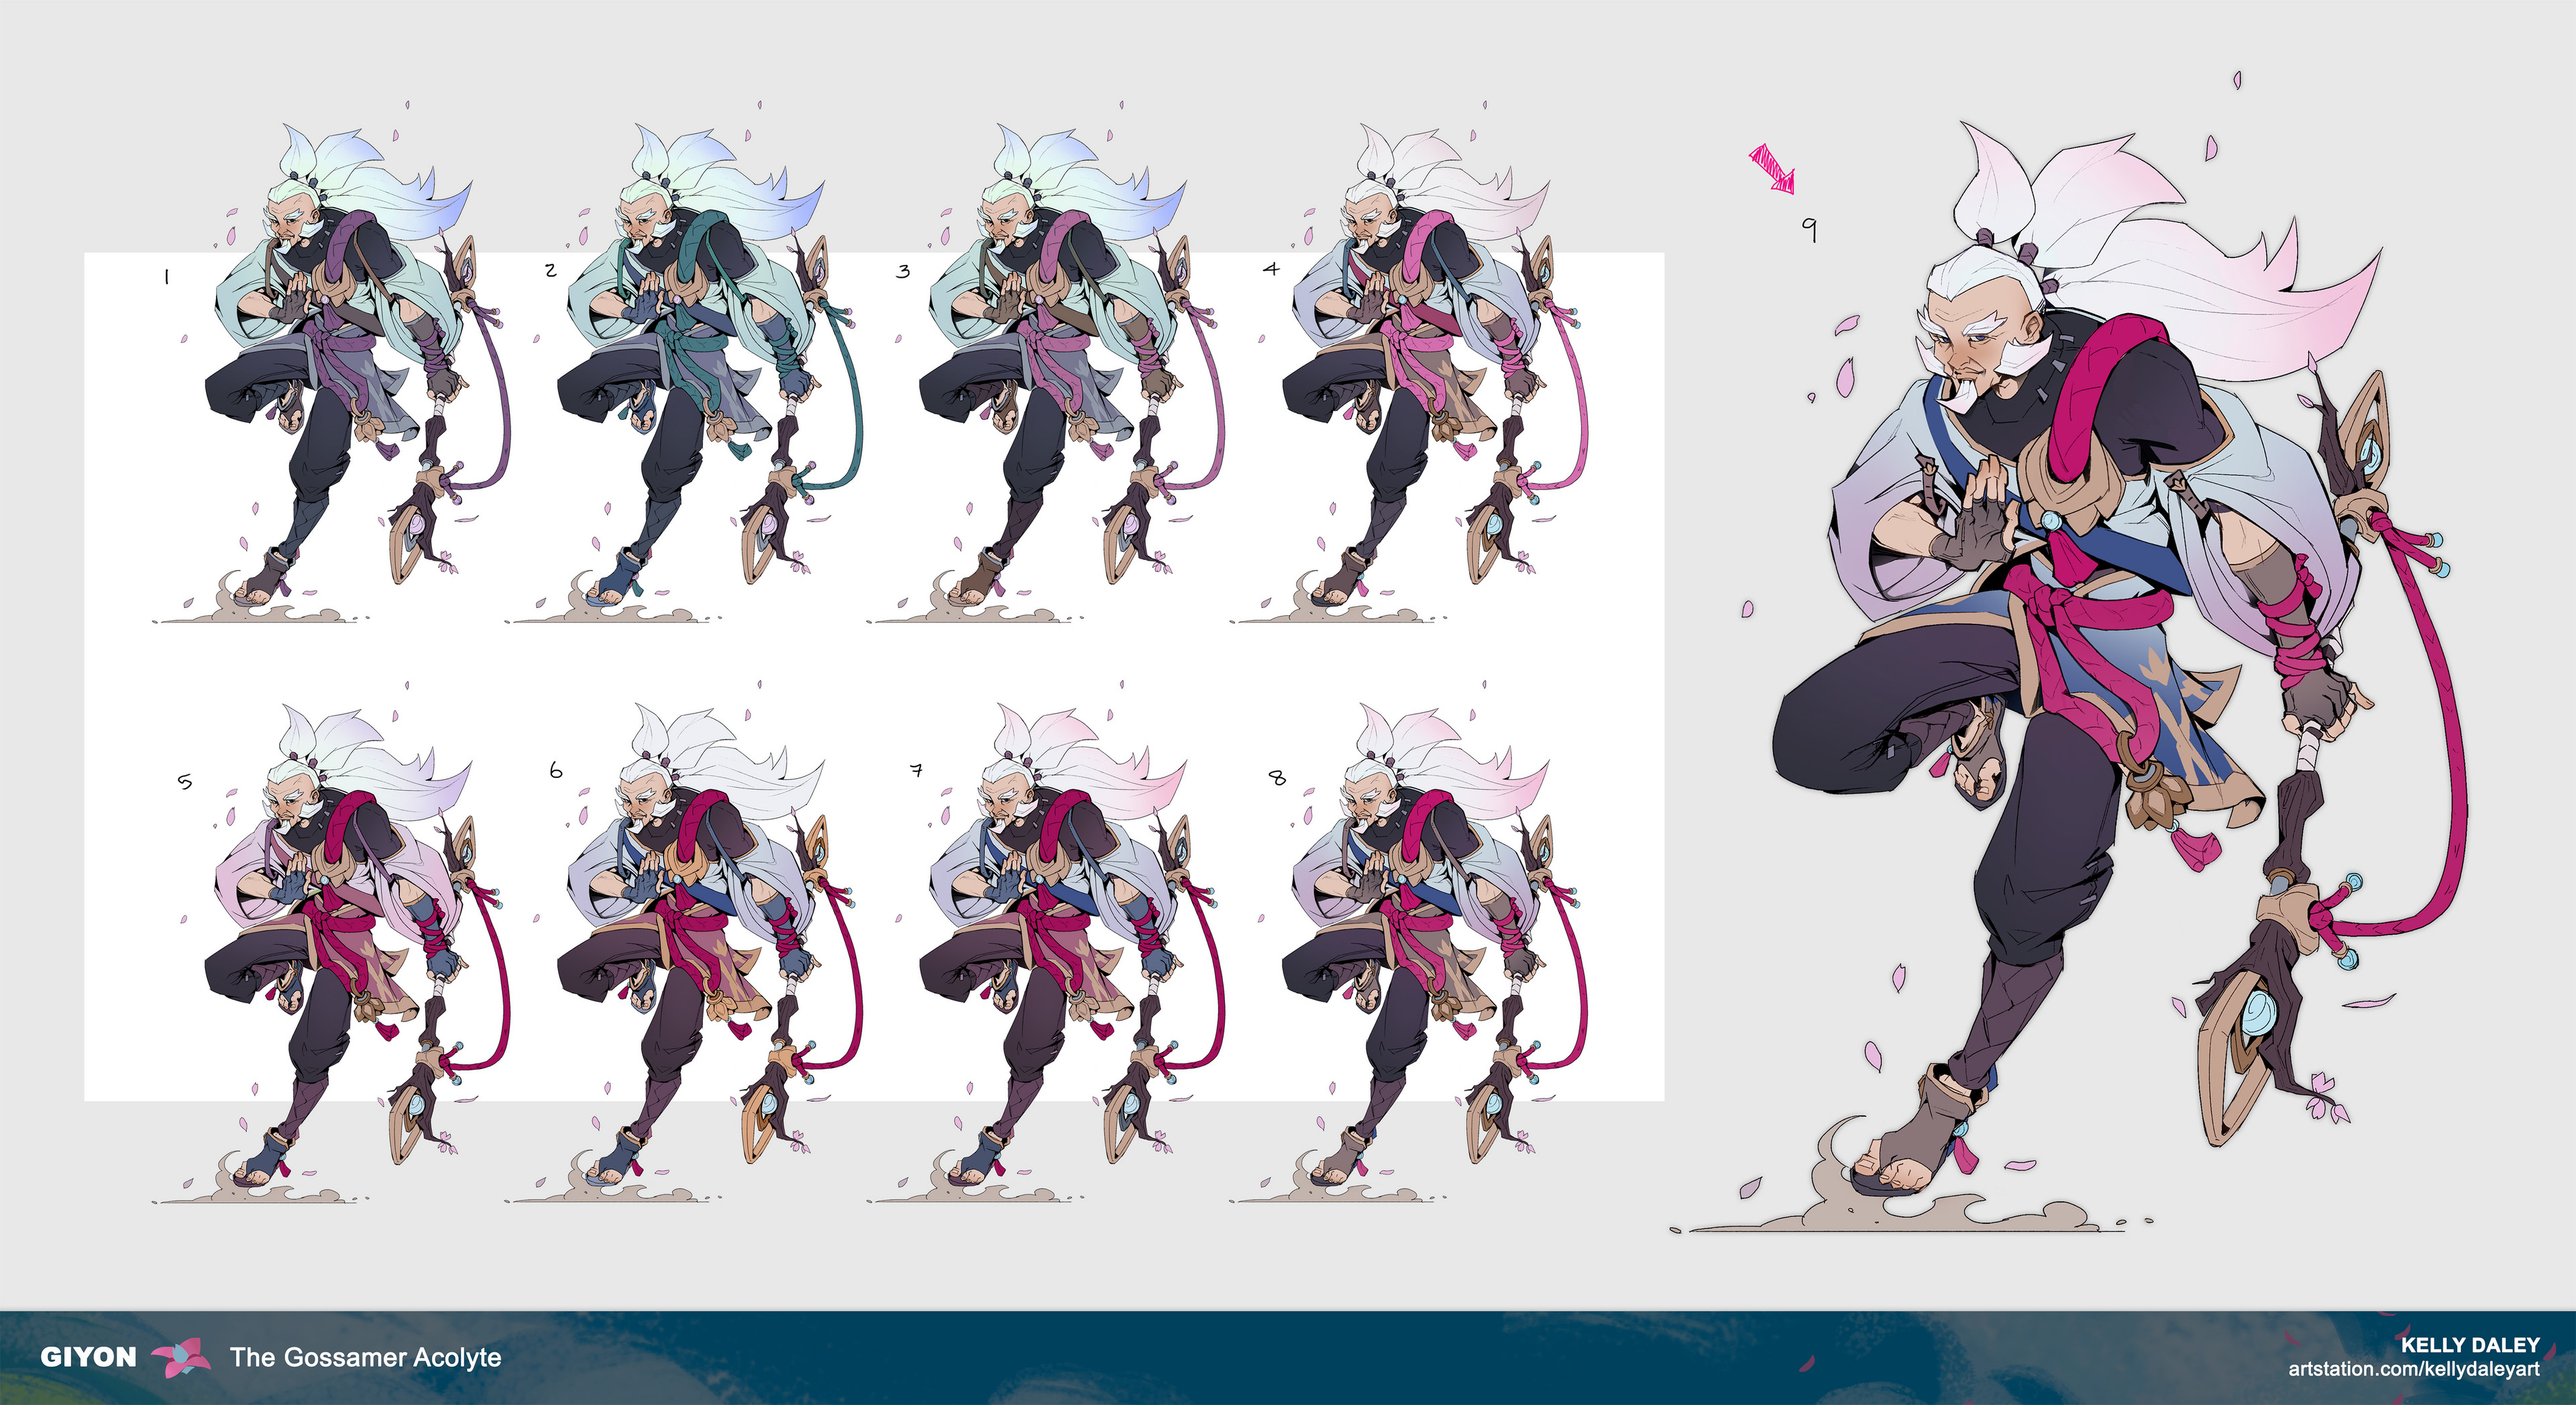 Color exploration. I had a general idea of the color palette he would have. I knew it would be an earthy base combined with sky+cherry blossom colors. Again, I kept the value gradient the same for the sake of readability in a MOBA setting.